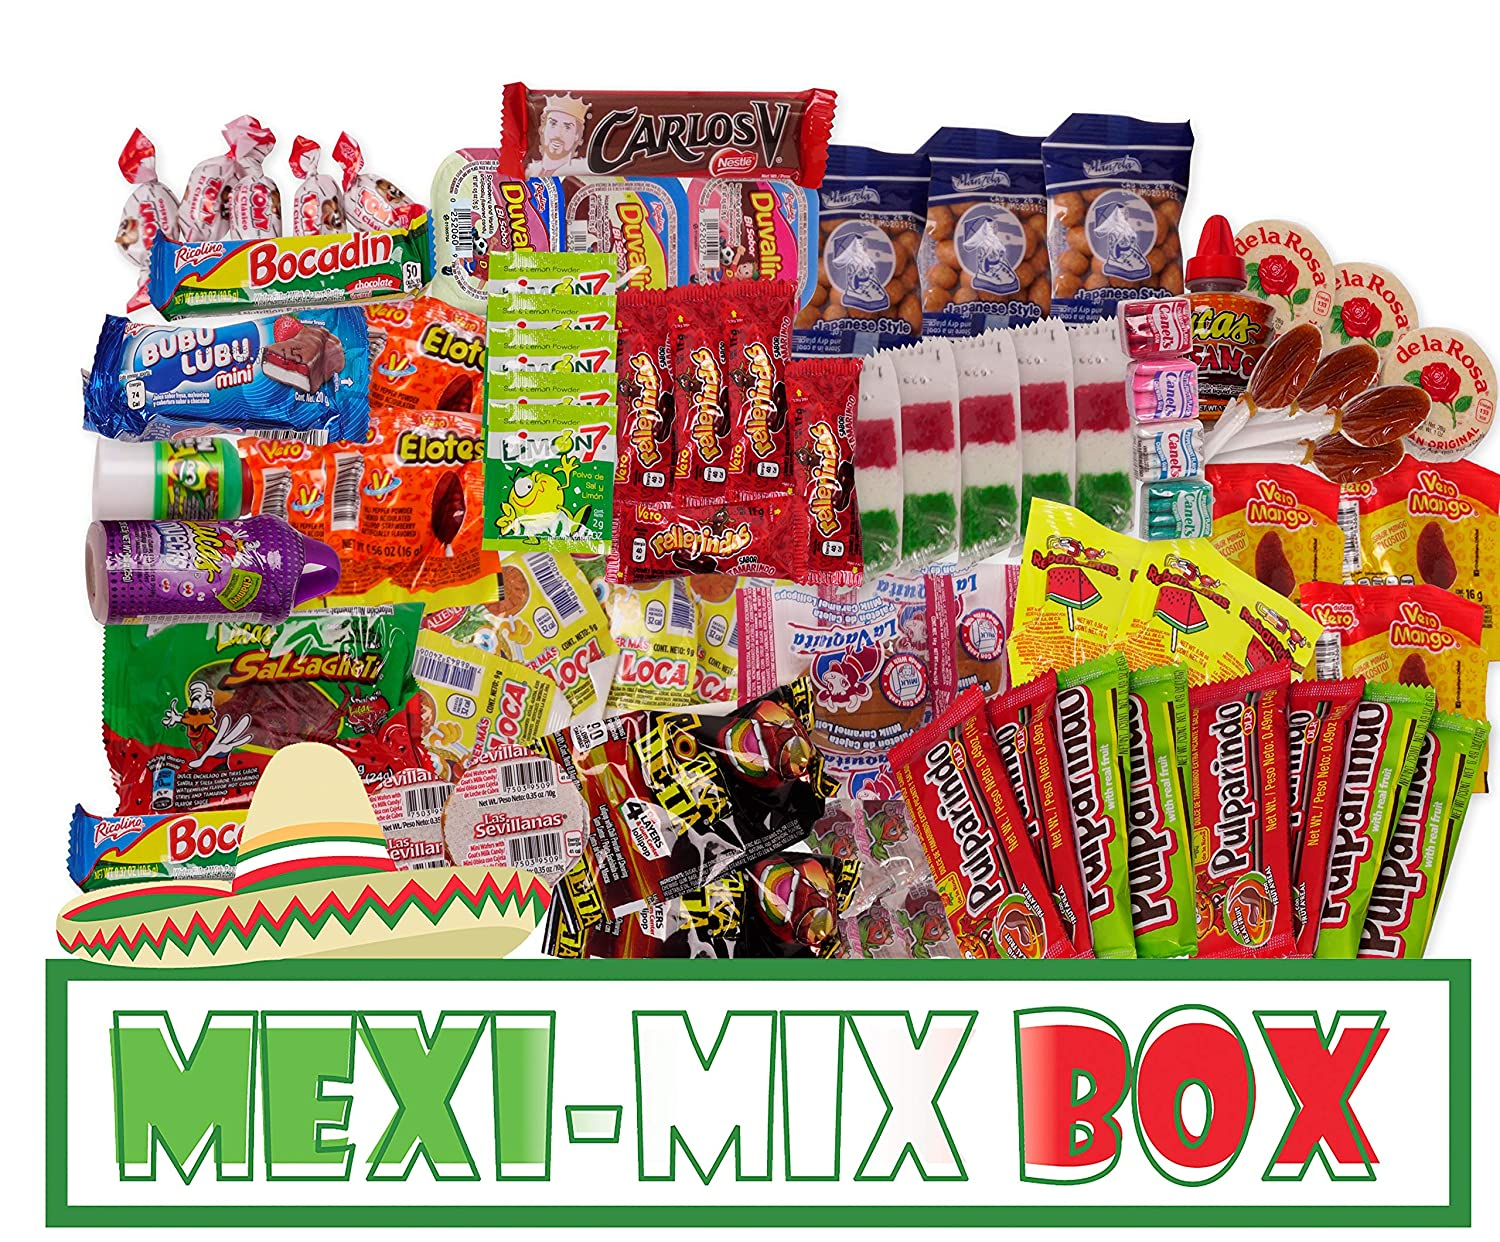 Mexi-Mix Box Mexican Candy Assortment. 86 count. Candy Care Package Variety of Spicy Candy Box Gift Bulk Dulces Mexicanos Snack Include: Obleas Duvalin Lucas Vero Mango Pulparindo Pelon Pelo Rico